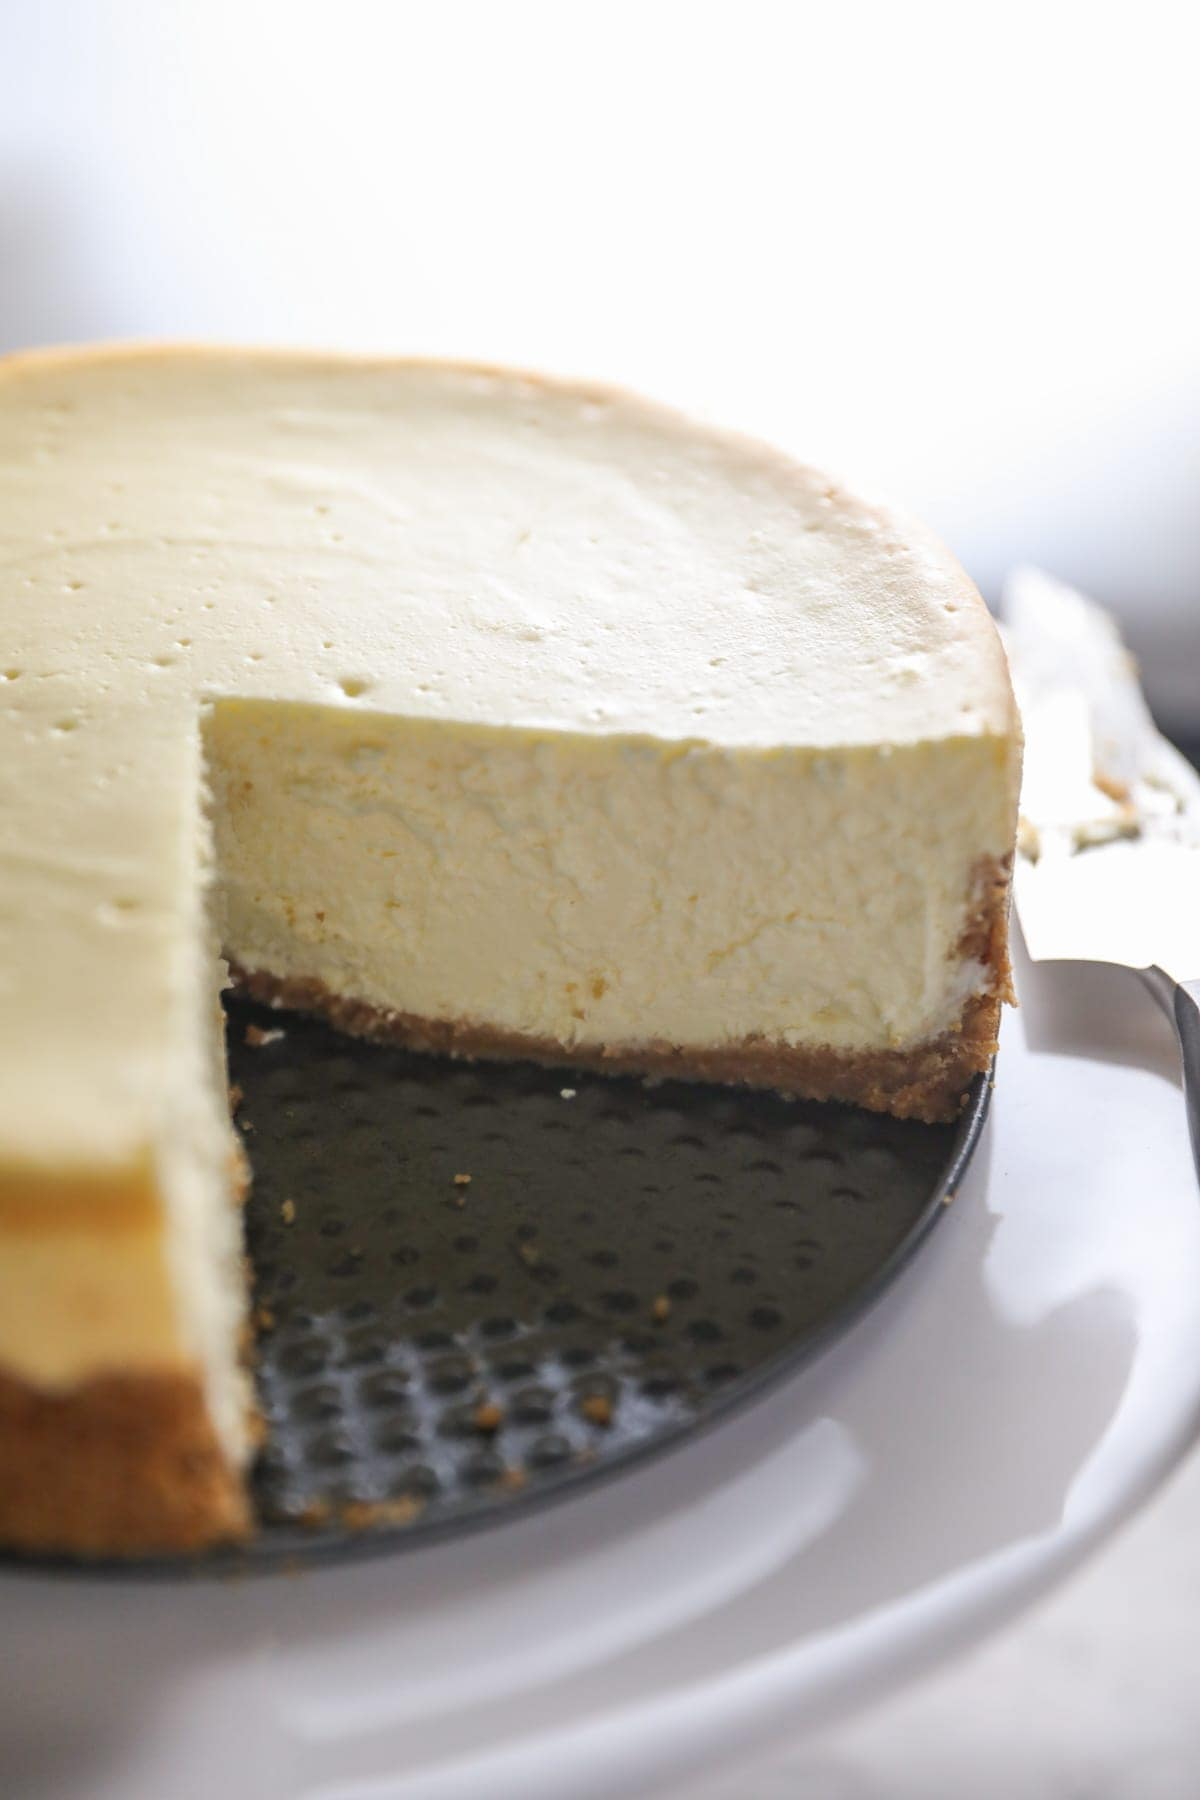 whole cheesecake with pieces removed